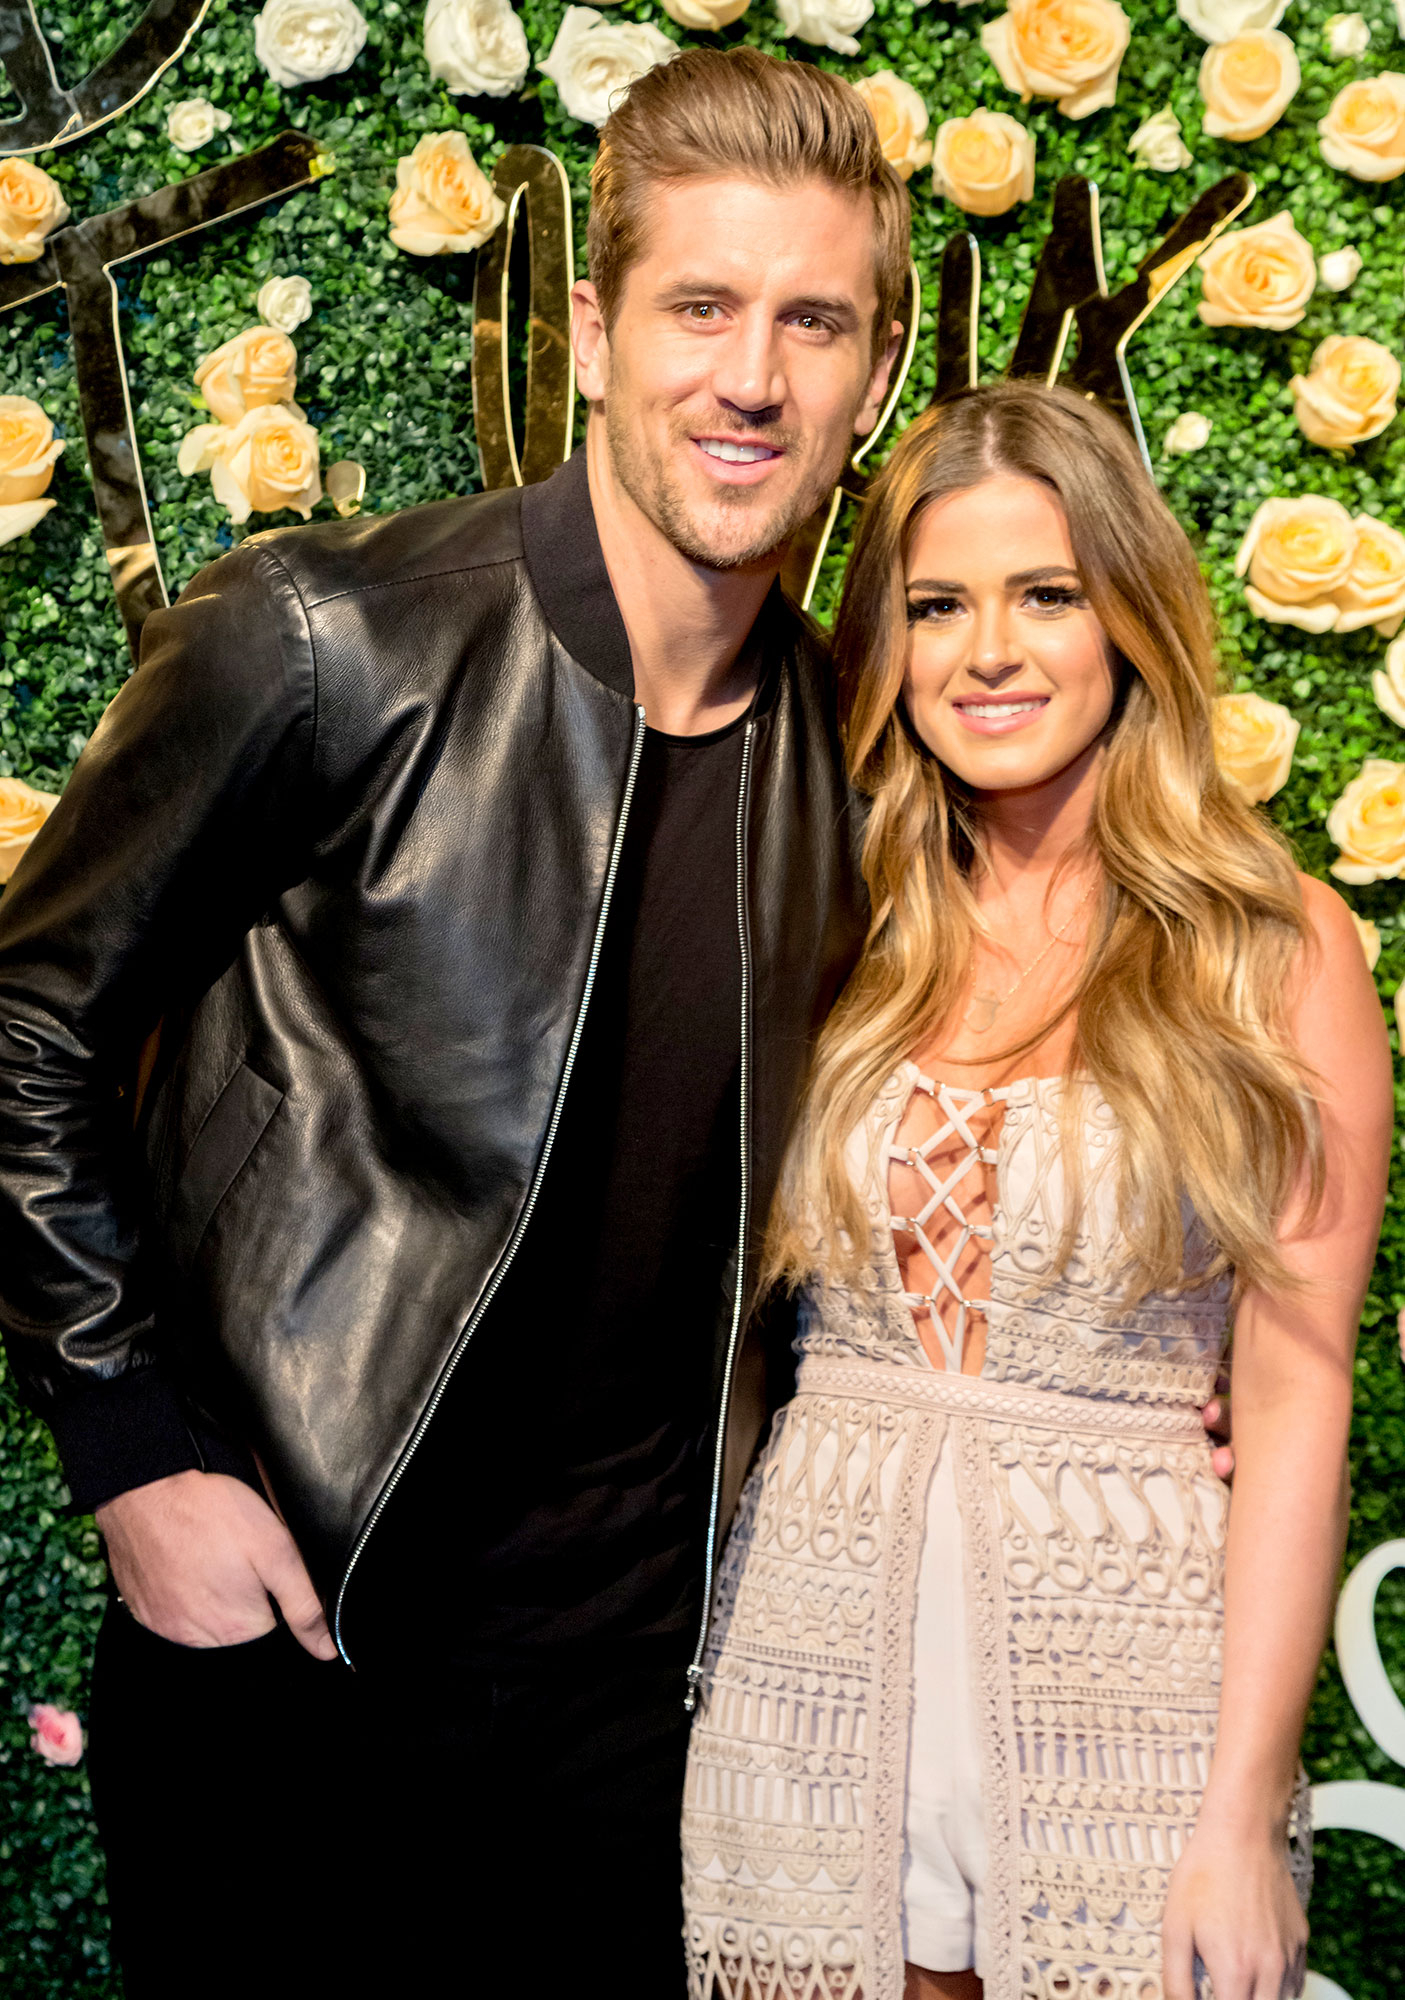 Jordan Rogers and JoJo Fletcher arrive for the Becca Tilley's Blog and YouTube Launch Party at The Bachelor Mansion on December 5, 2016 in Los Angeles, California.